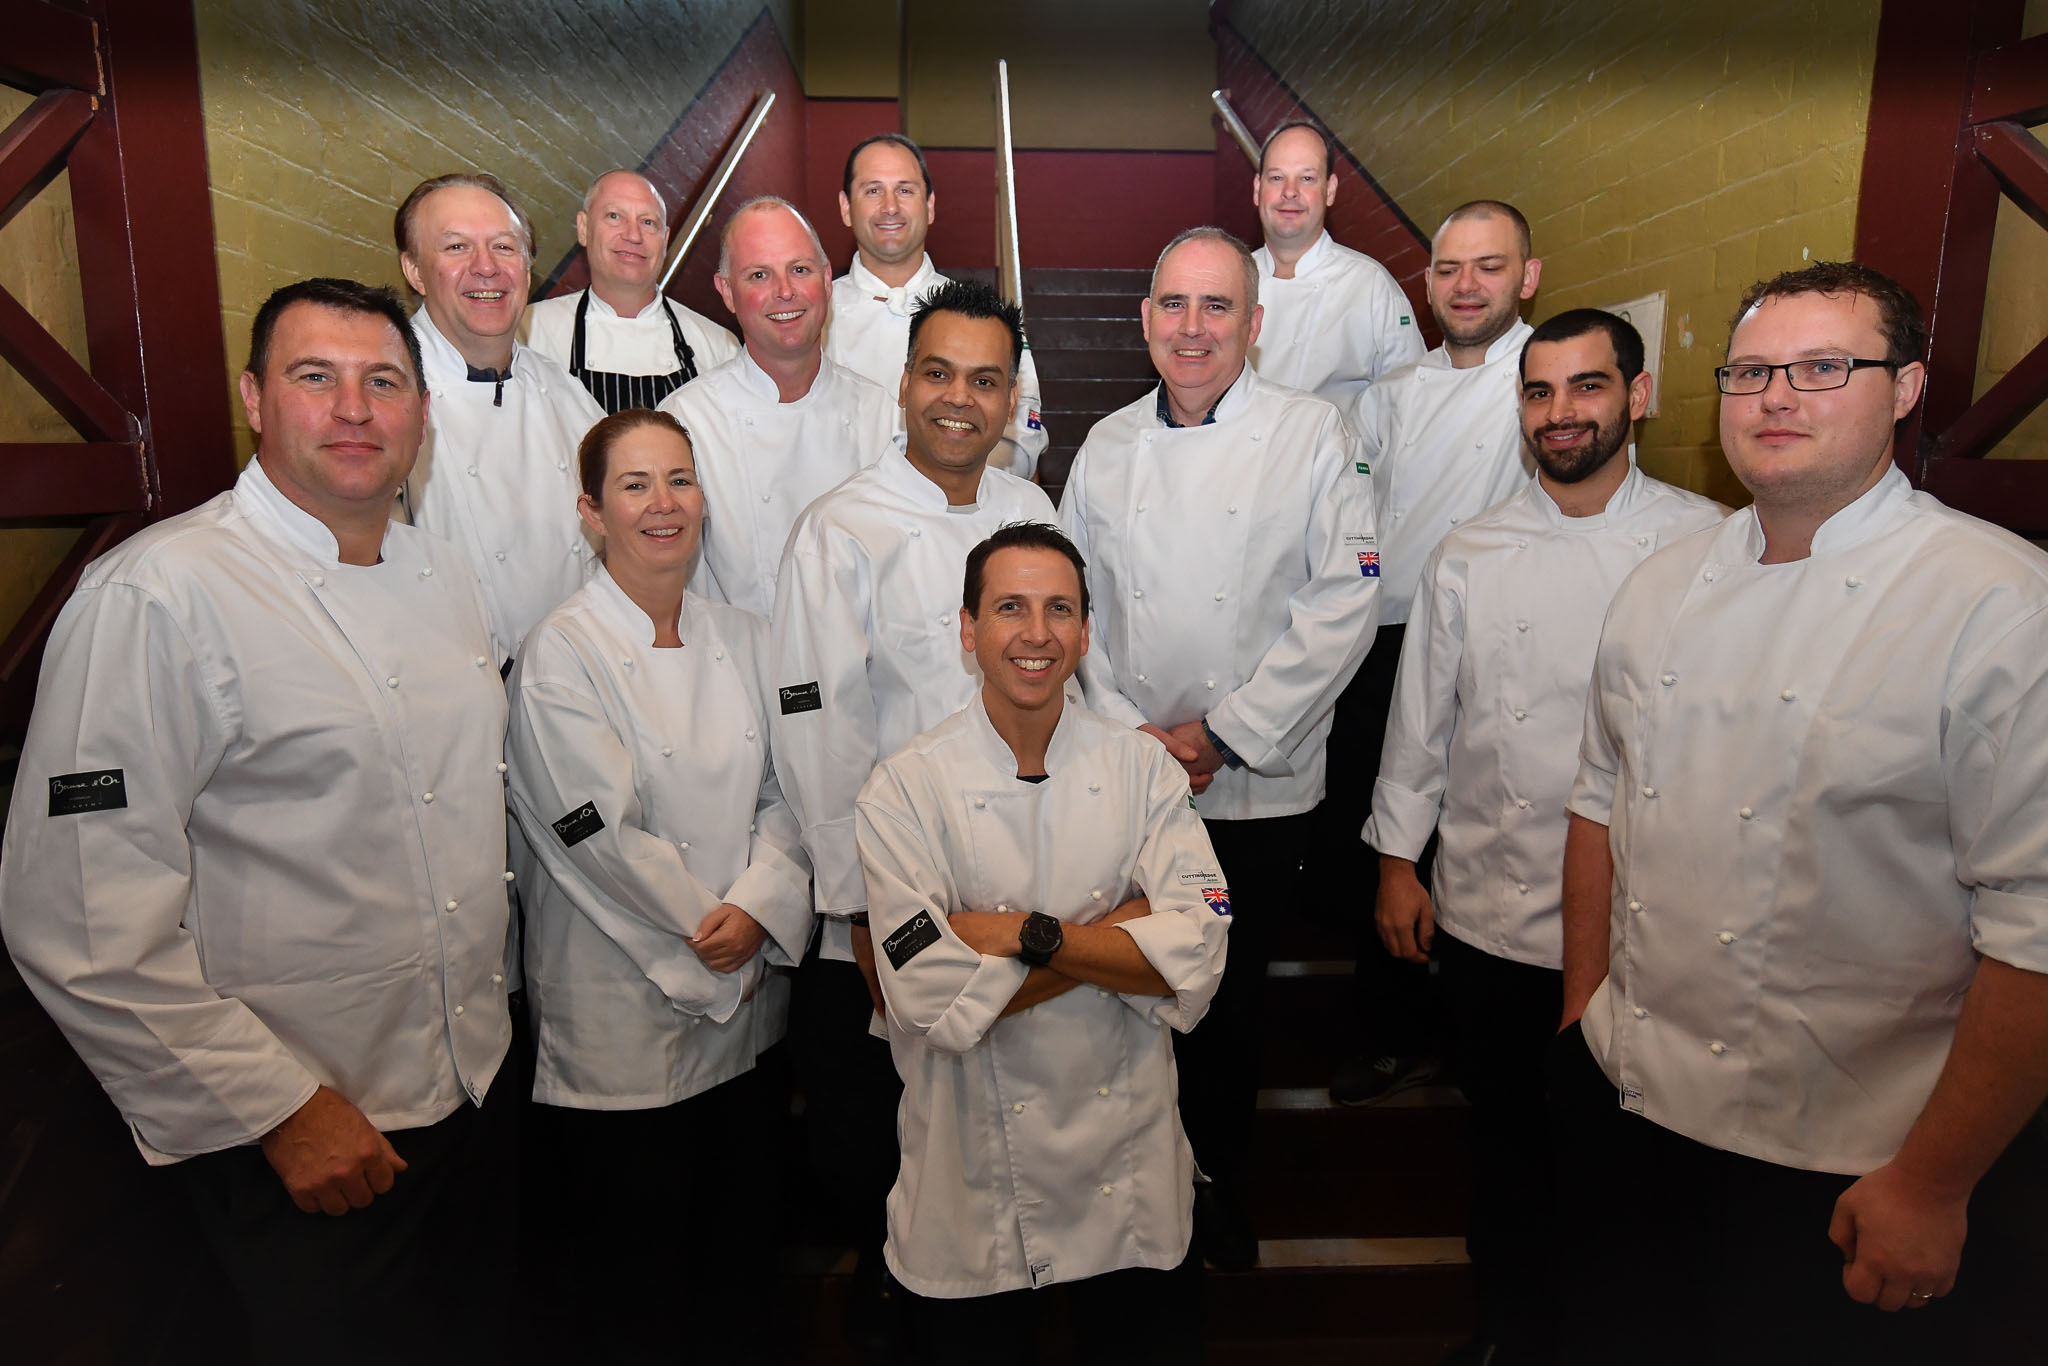 Melbourne, 30 May 2017 - The judges pose for a photograph at the Australian selection trials of the Bocuse d'Or culinary competition held during the Food Service Australia show at the Royal Exhibition Building in Melbourne, Australia.   Mark Agius from the William Angliss Institute a judge of the fish plate Donovan Cooke from The Atlantic Restaurant a judge of the fish plate Alexander McIntosh from At The Heads a judge of the fish plate Andre Smaniotto from the Geelong Cats a judge of the fish plate Simon Cosentino former Commis competitor Bocuse d'Or 2007-9 a judge of the meat plate Florent Gerardin from the Newmarket Hotel a judge of the meat plate Deepak Mishra from The Langham Hotel a judge of the meat plate Mark Weatherley from Les Toques Blanches a judge of the meat plate Karen Doyle from Le Cordon Bleu kitchen invigilator judge Glenn Flood from the ALH Group kitchen invigilator judge John McFadden from the Parkroyal Hotel Darling Harbour kitchen invigilator judge Head judge Philippe Mouchel from the Philippe Restaurant kitchen invigilator judge Tom Milligan of the Bocuse d'Or Academy AustraliaPhoto Sydney Low